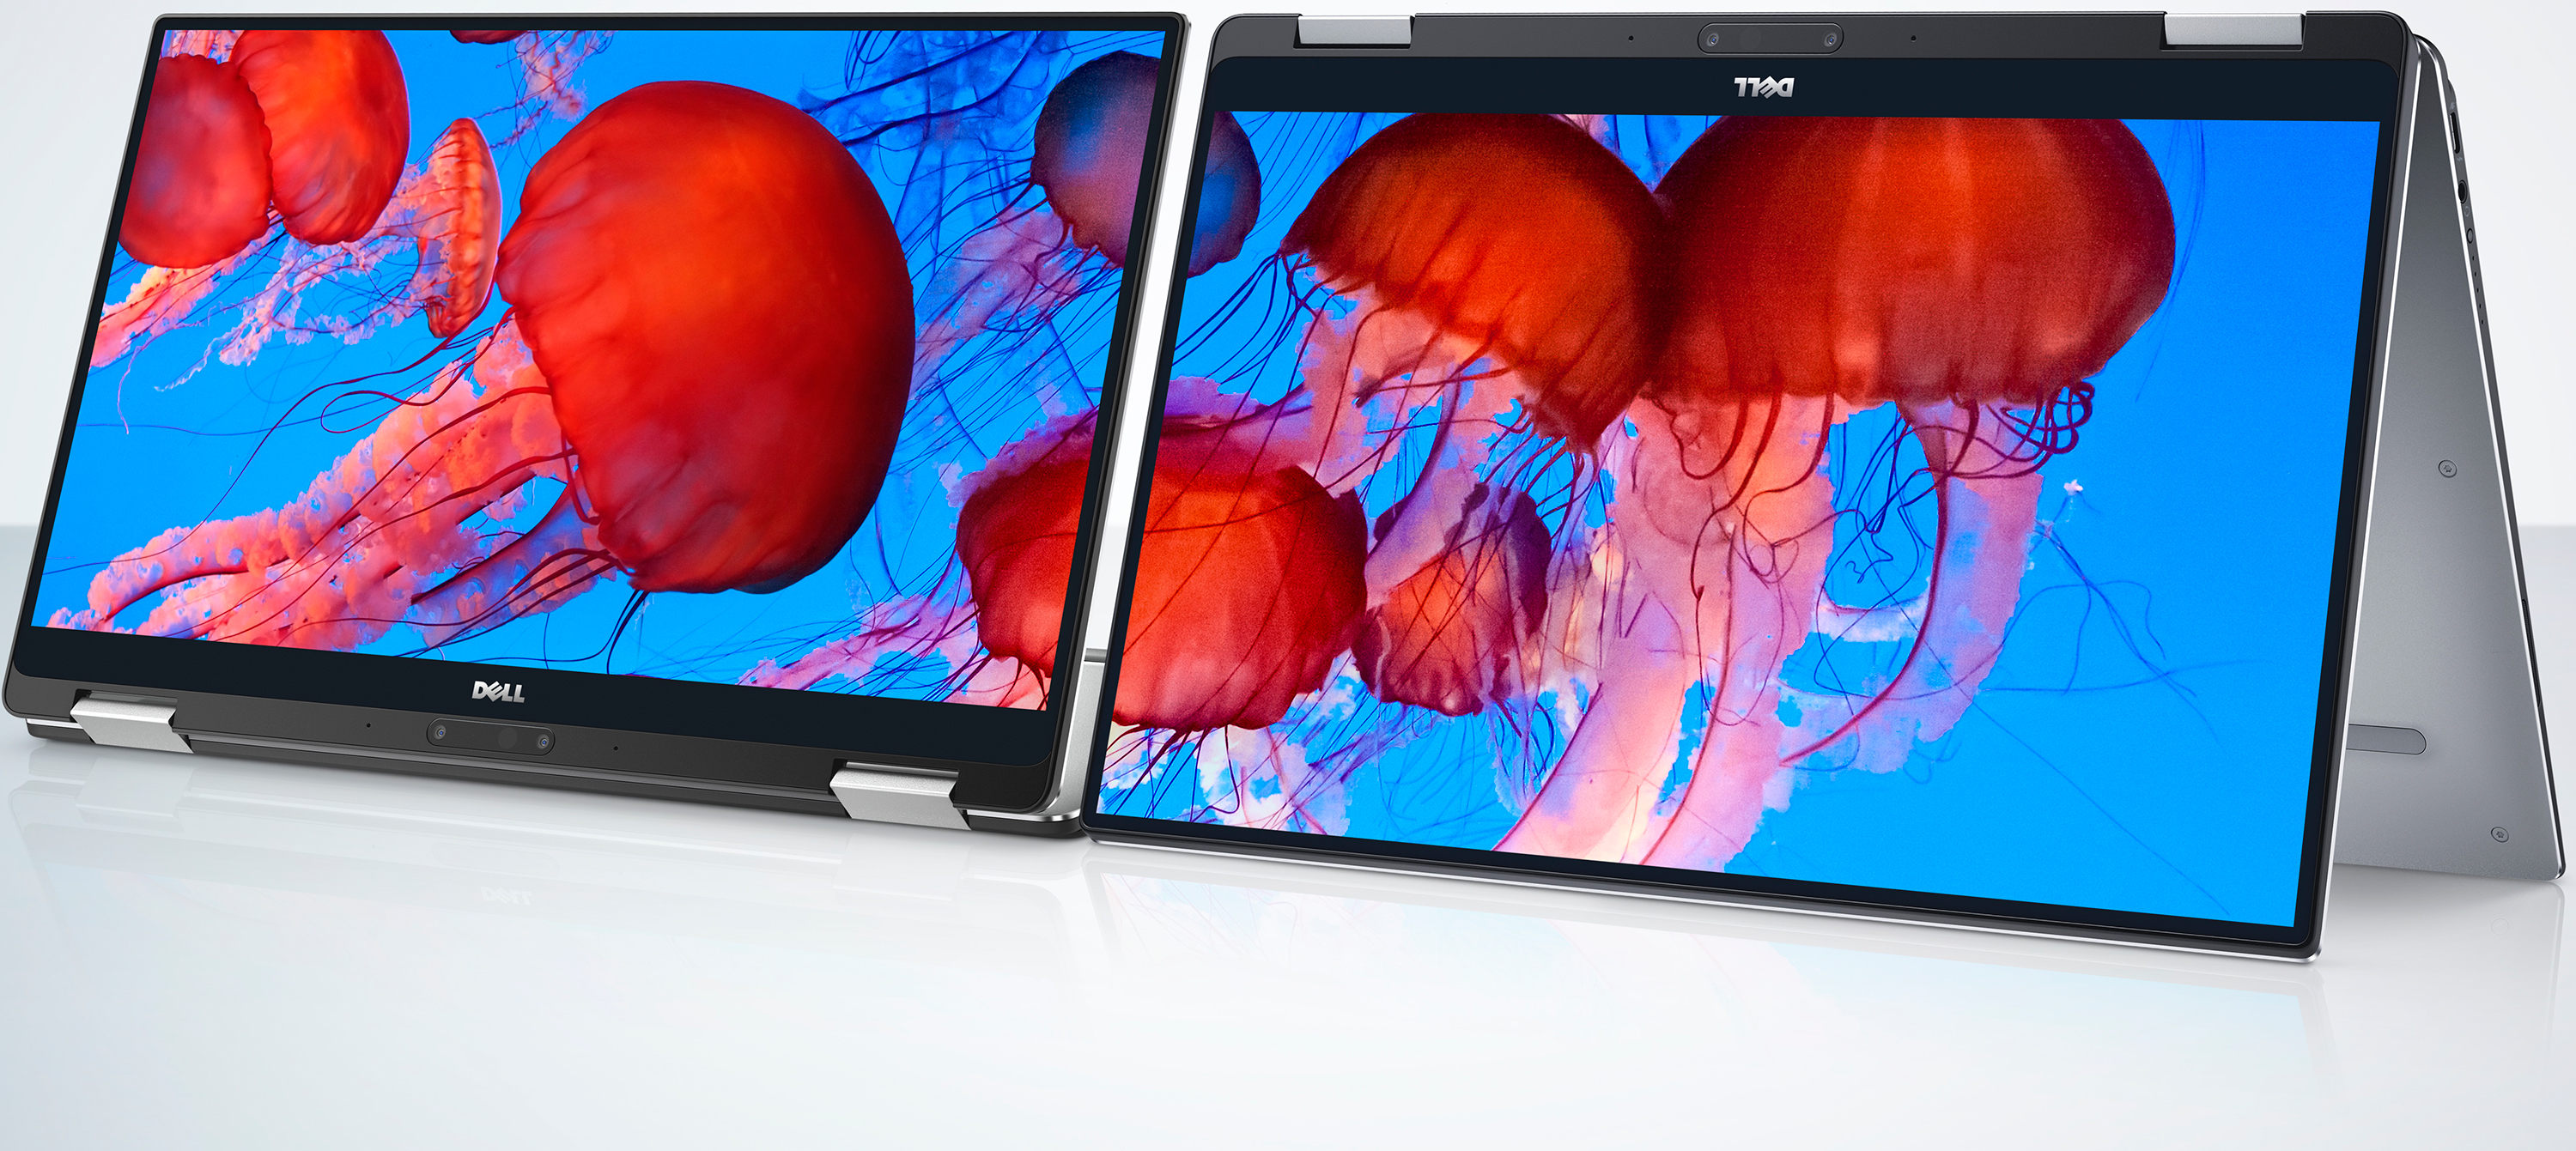 Dell Refreshes XPS 13 2-in-1: Amber Lake 5W CPUs with